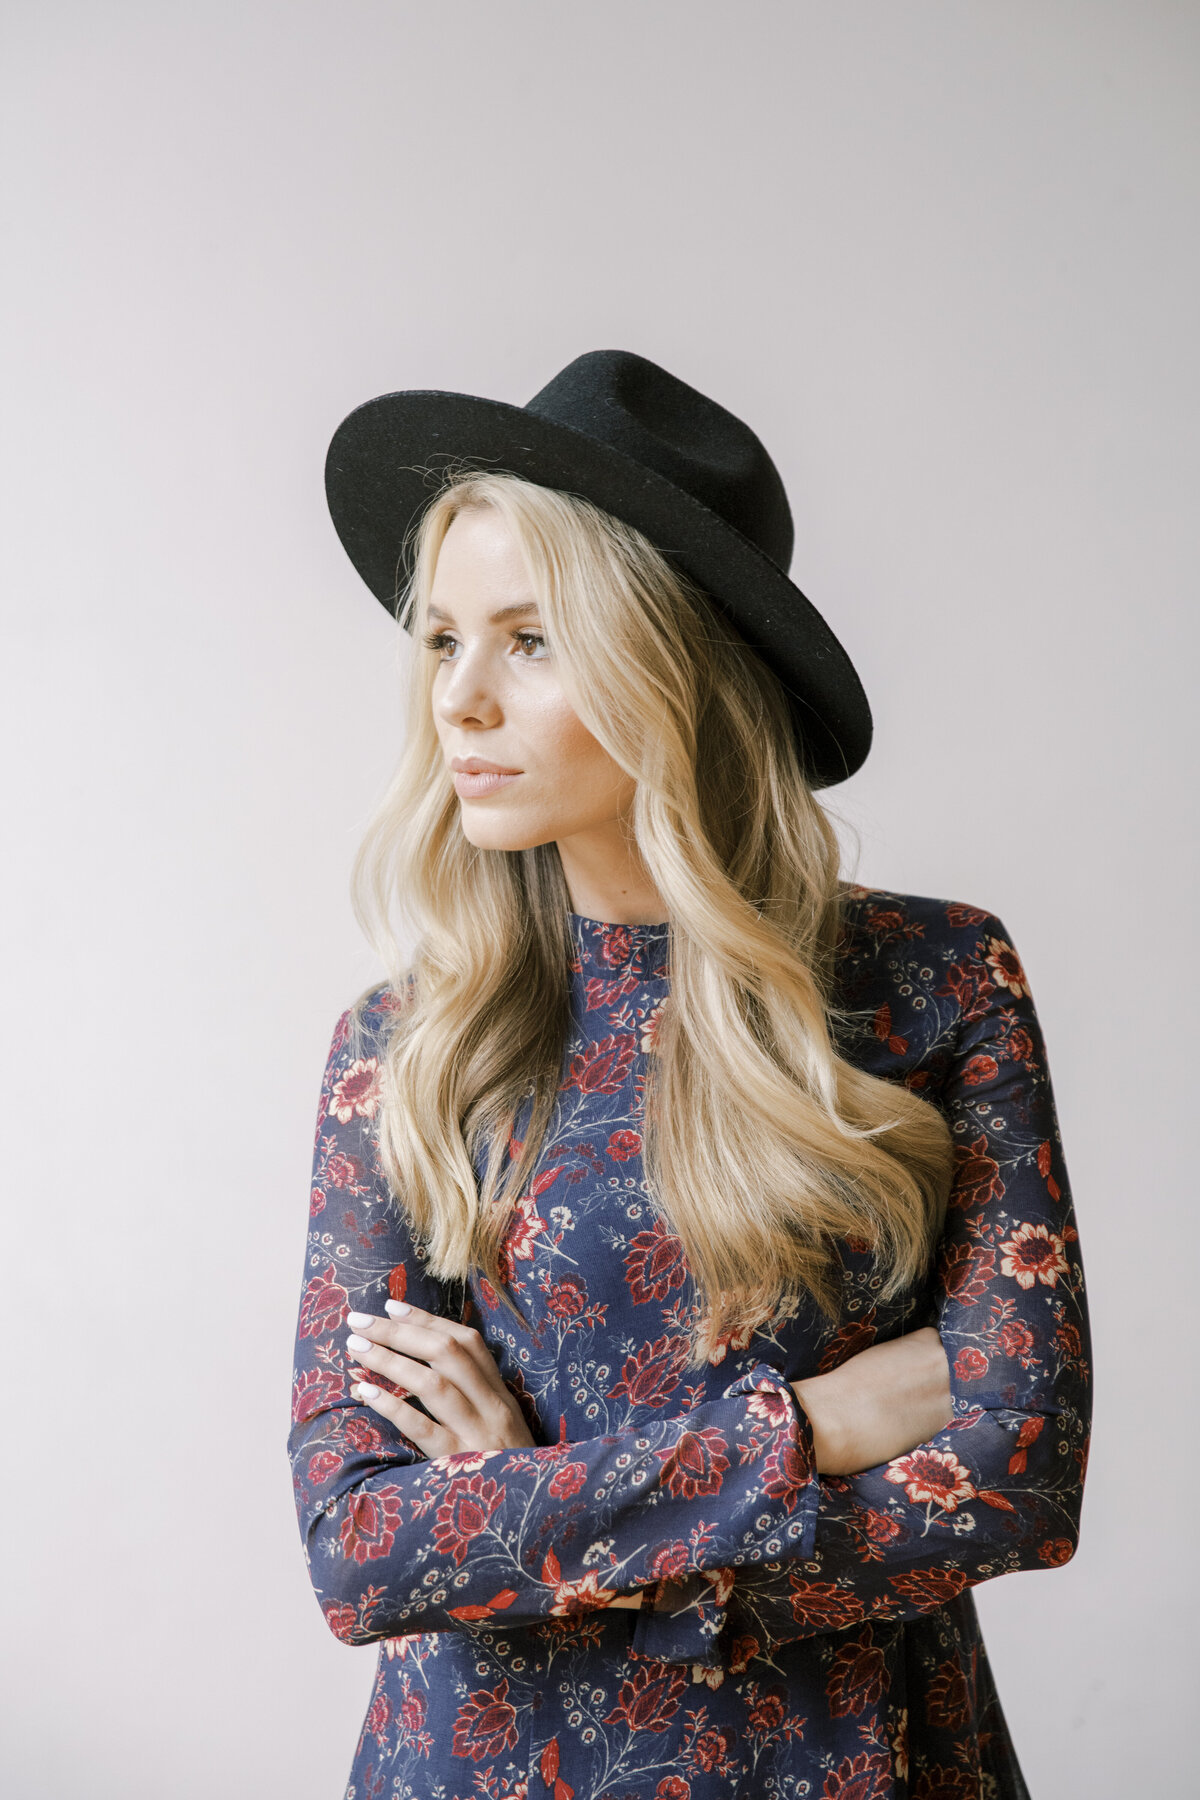 blond woman with black hat and floral top crossing her arms in front of her and looking off into the distance